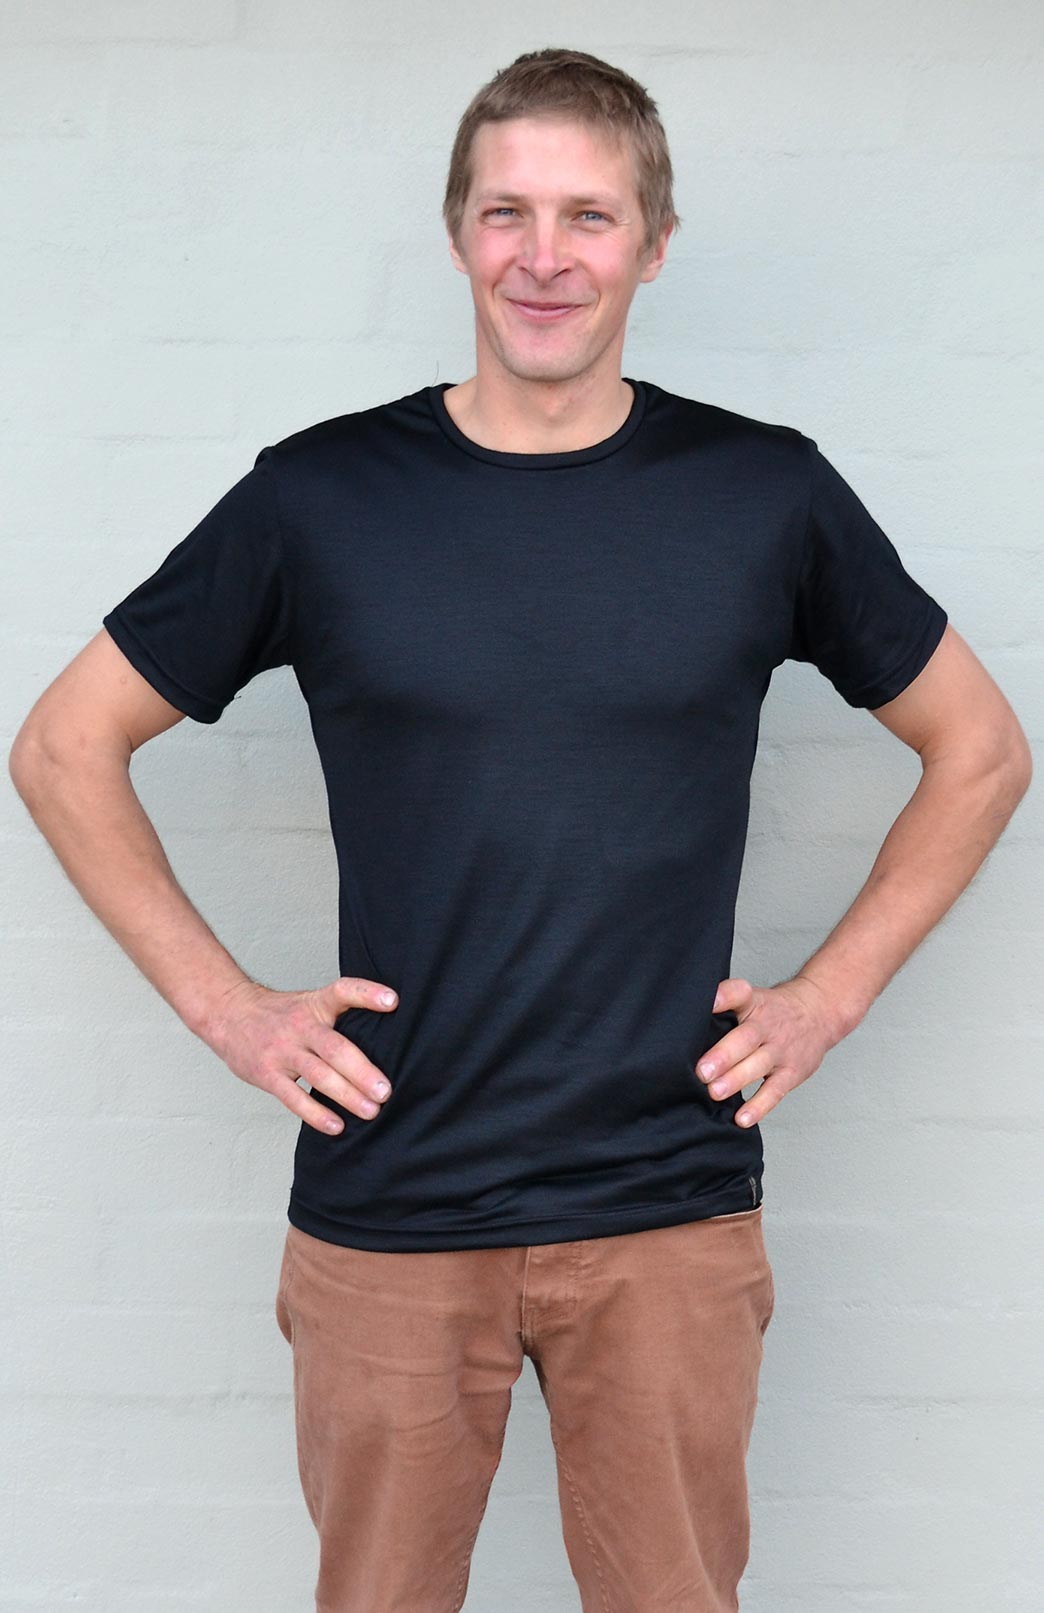 Short Sleeved Crew Neck Top - Lightweight (~170g) - Men's Pure Merino Wool Lightweight Short Sleeved Thermal Top with Crew Neckline - Smitten Merino Tasmania Australia